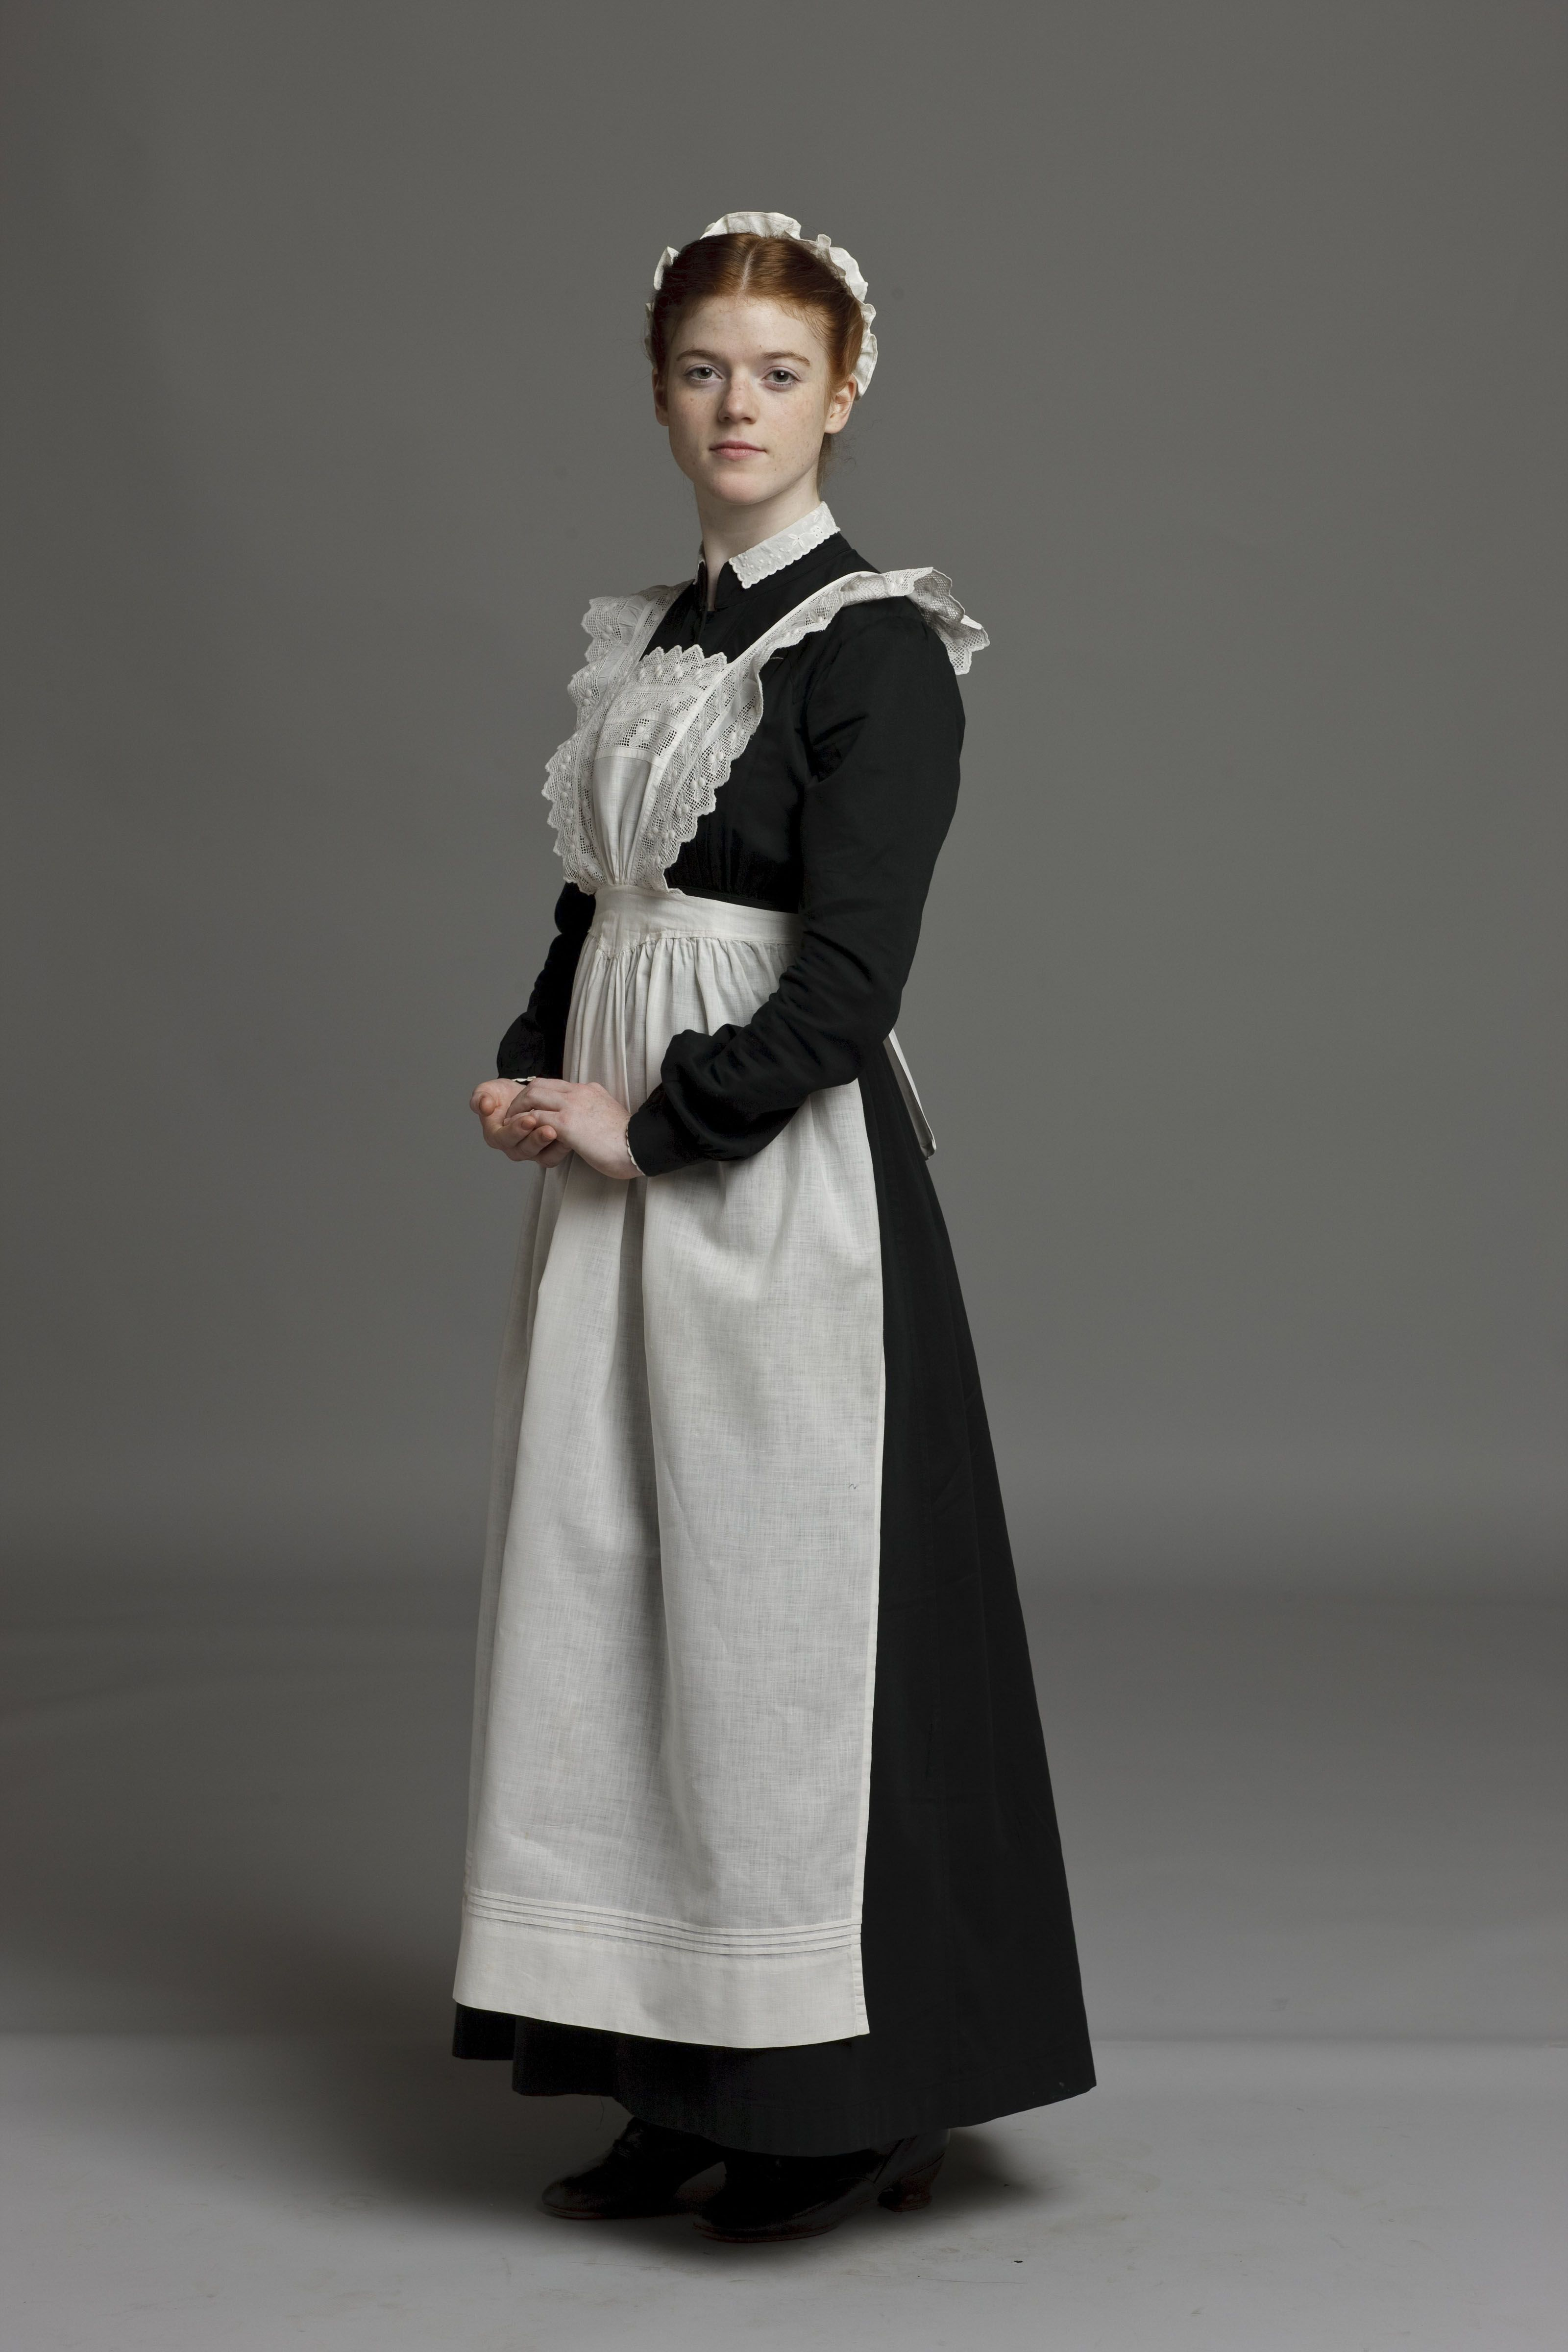 Downton Abbey S1 Rose Leslie as \